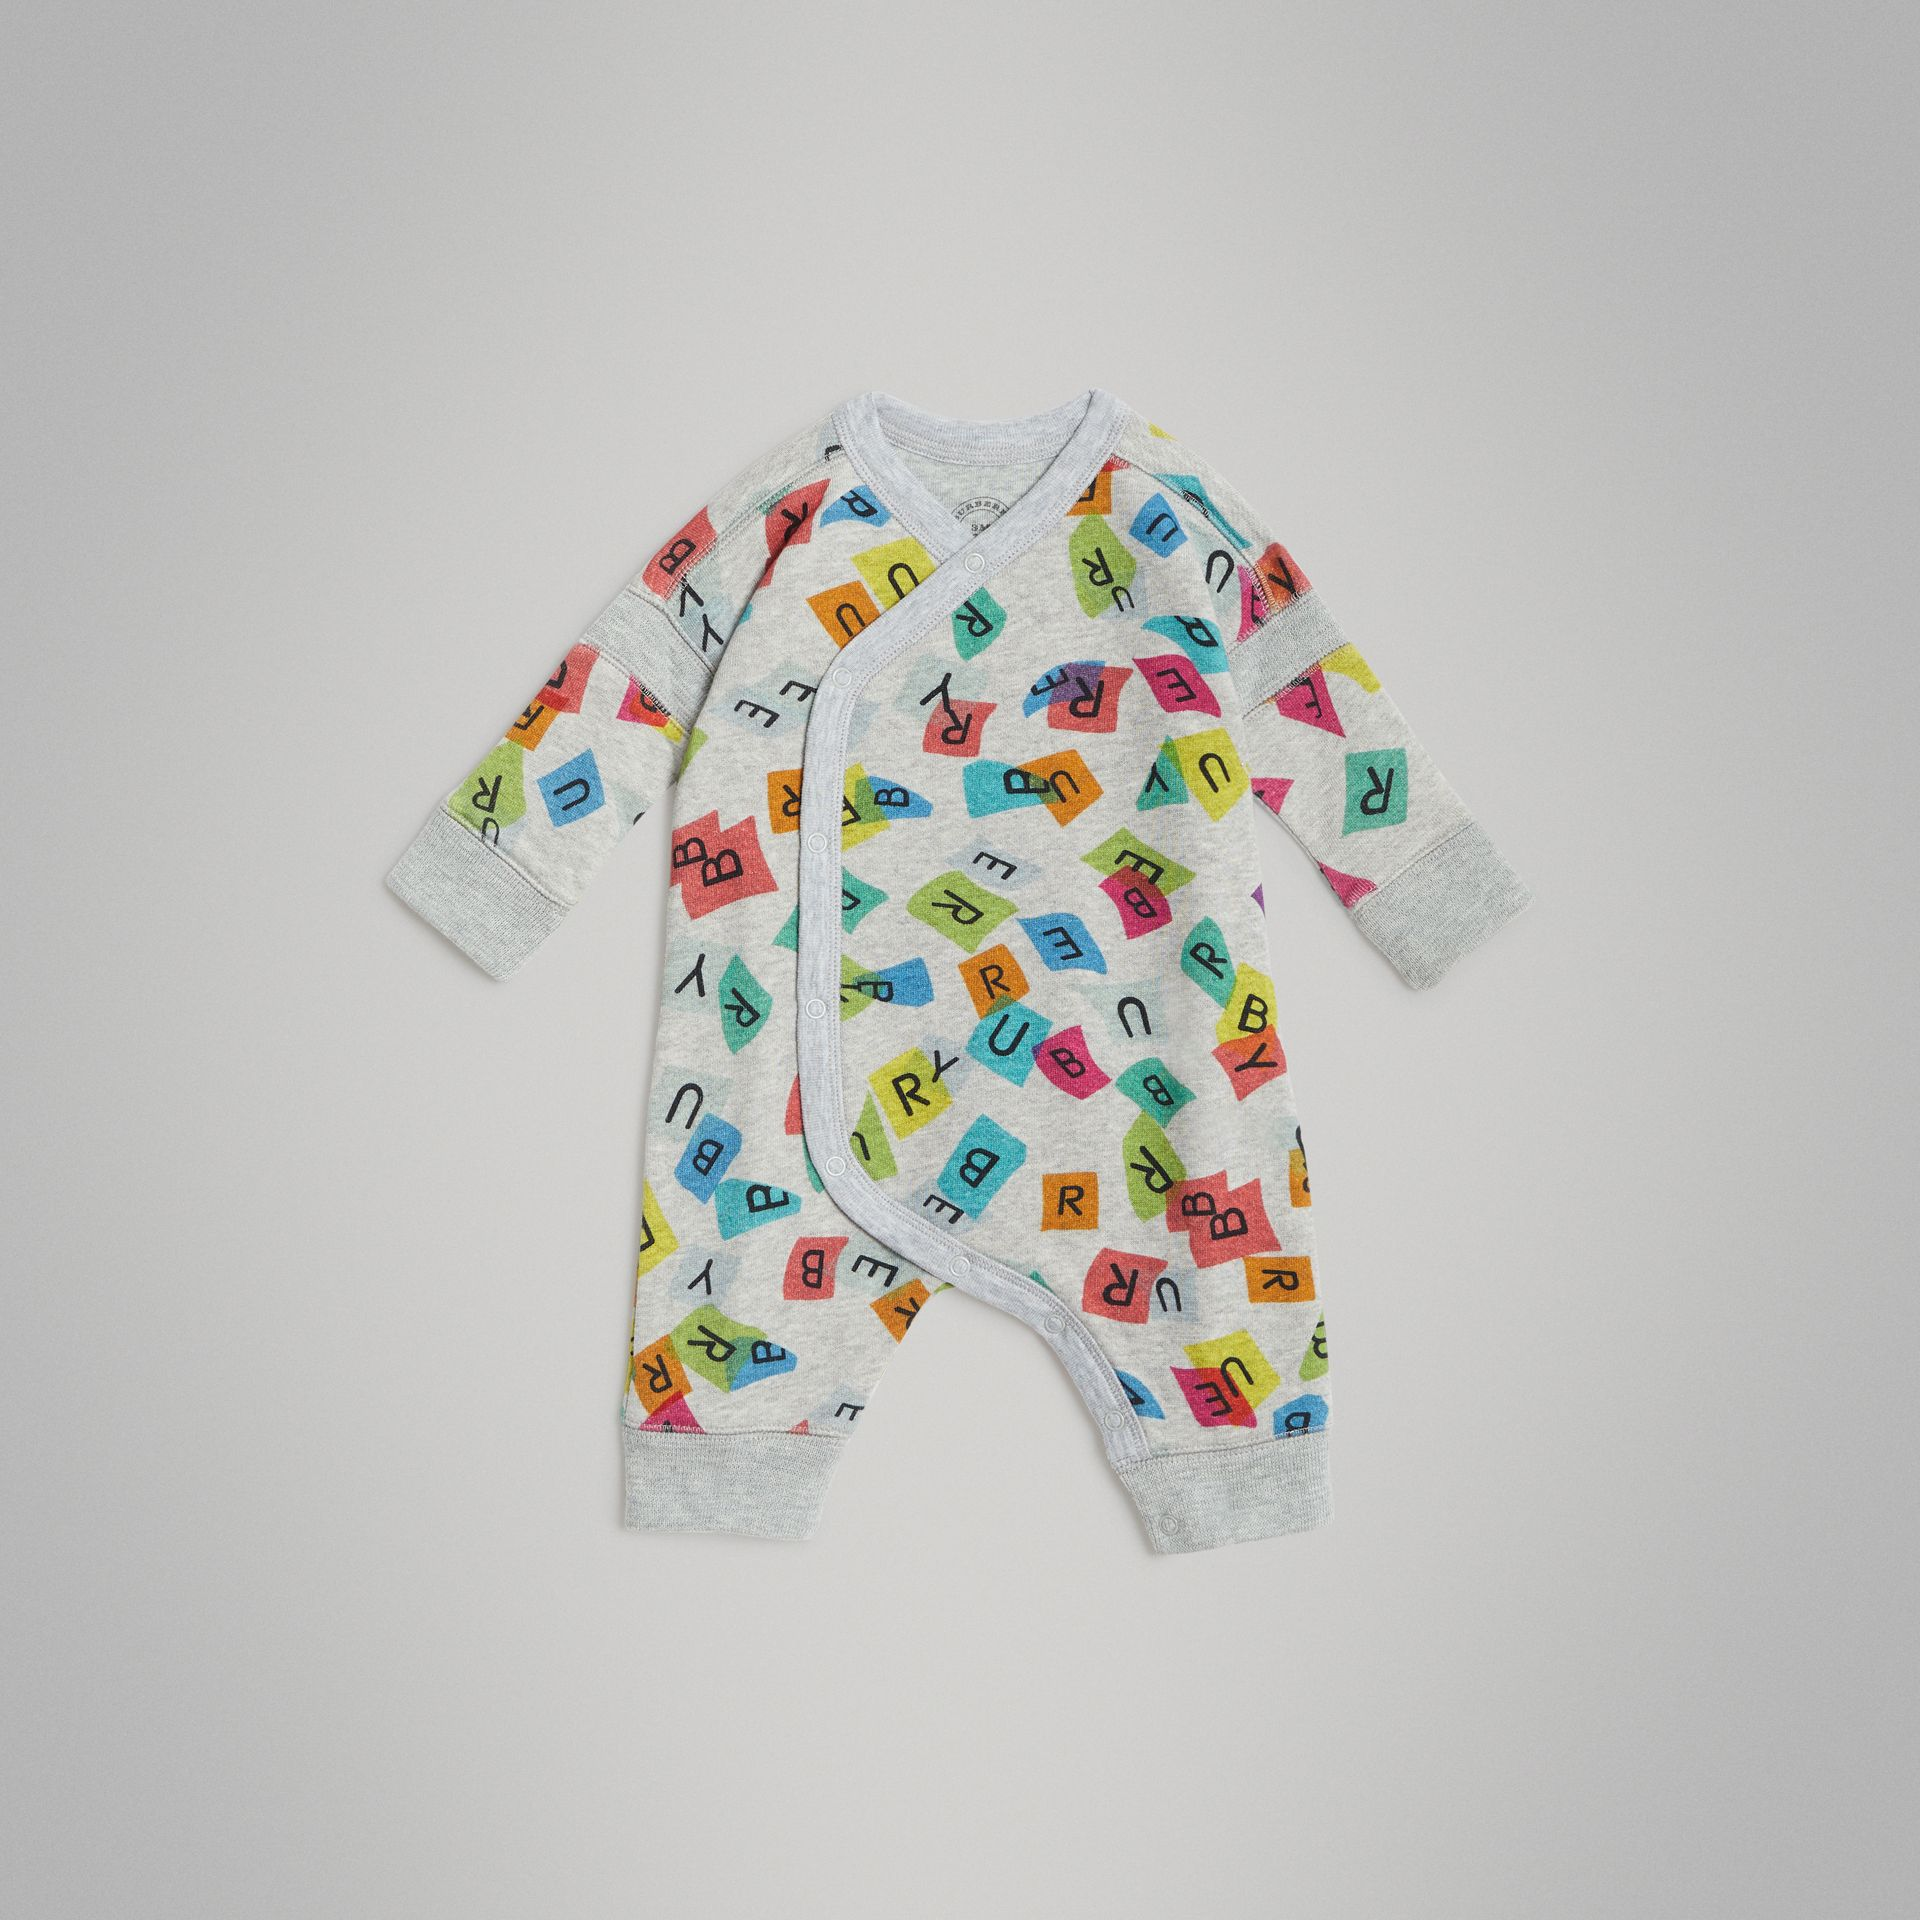 Confetti Letter Print Cotton Jumpsuit in Grey Melange - Children | Burberry United Kingdom - gallery image 2